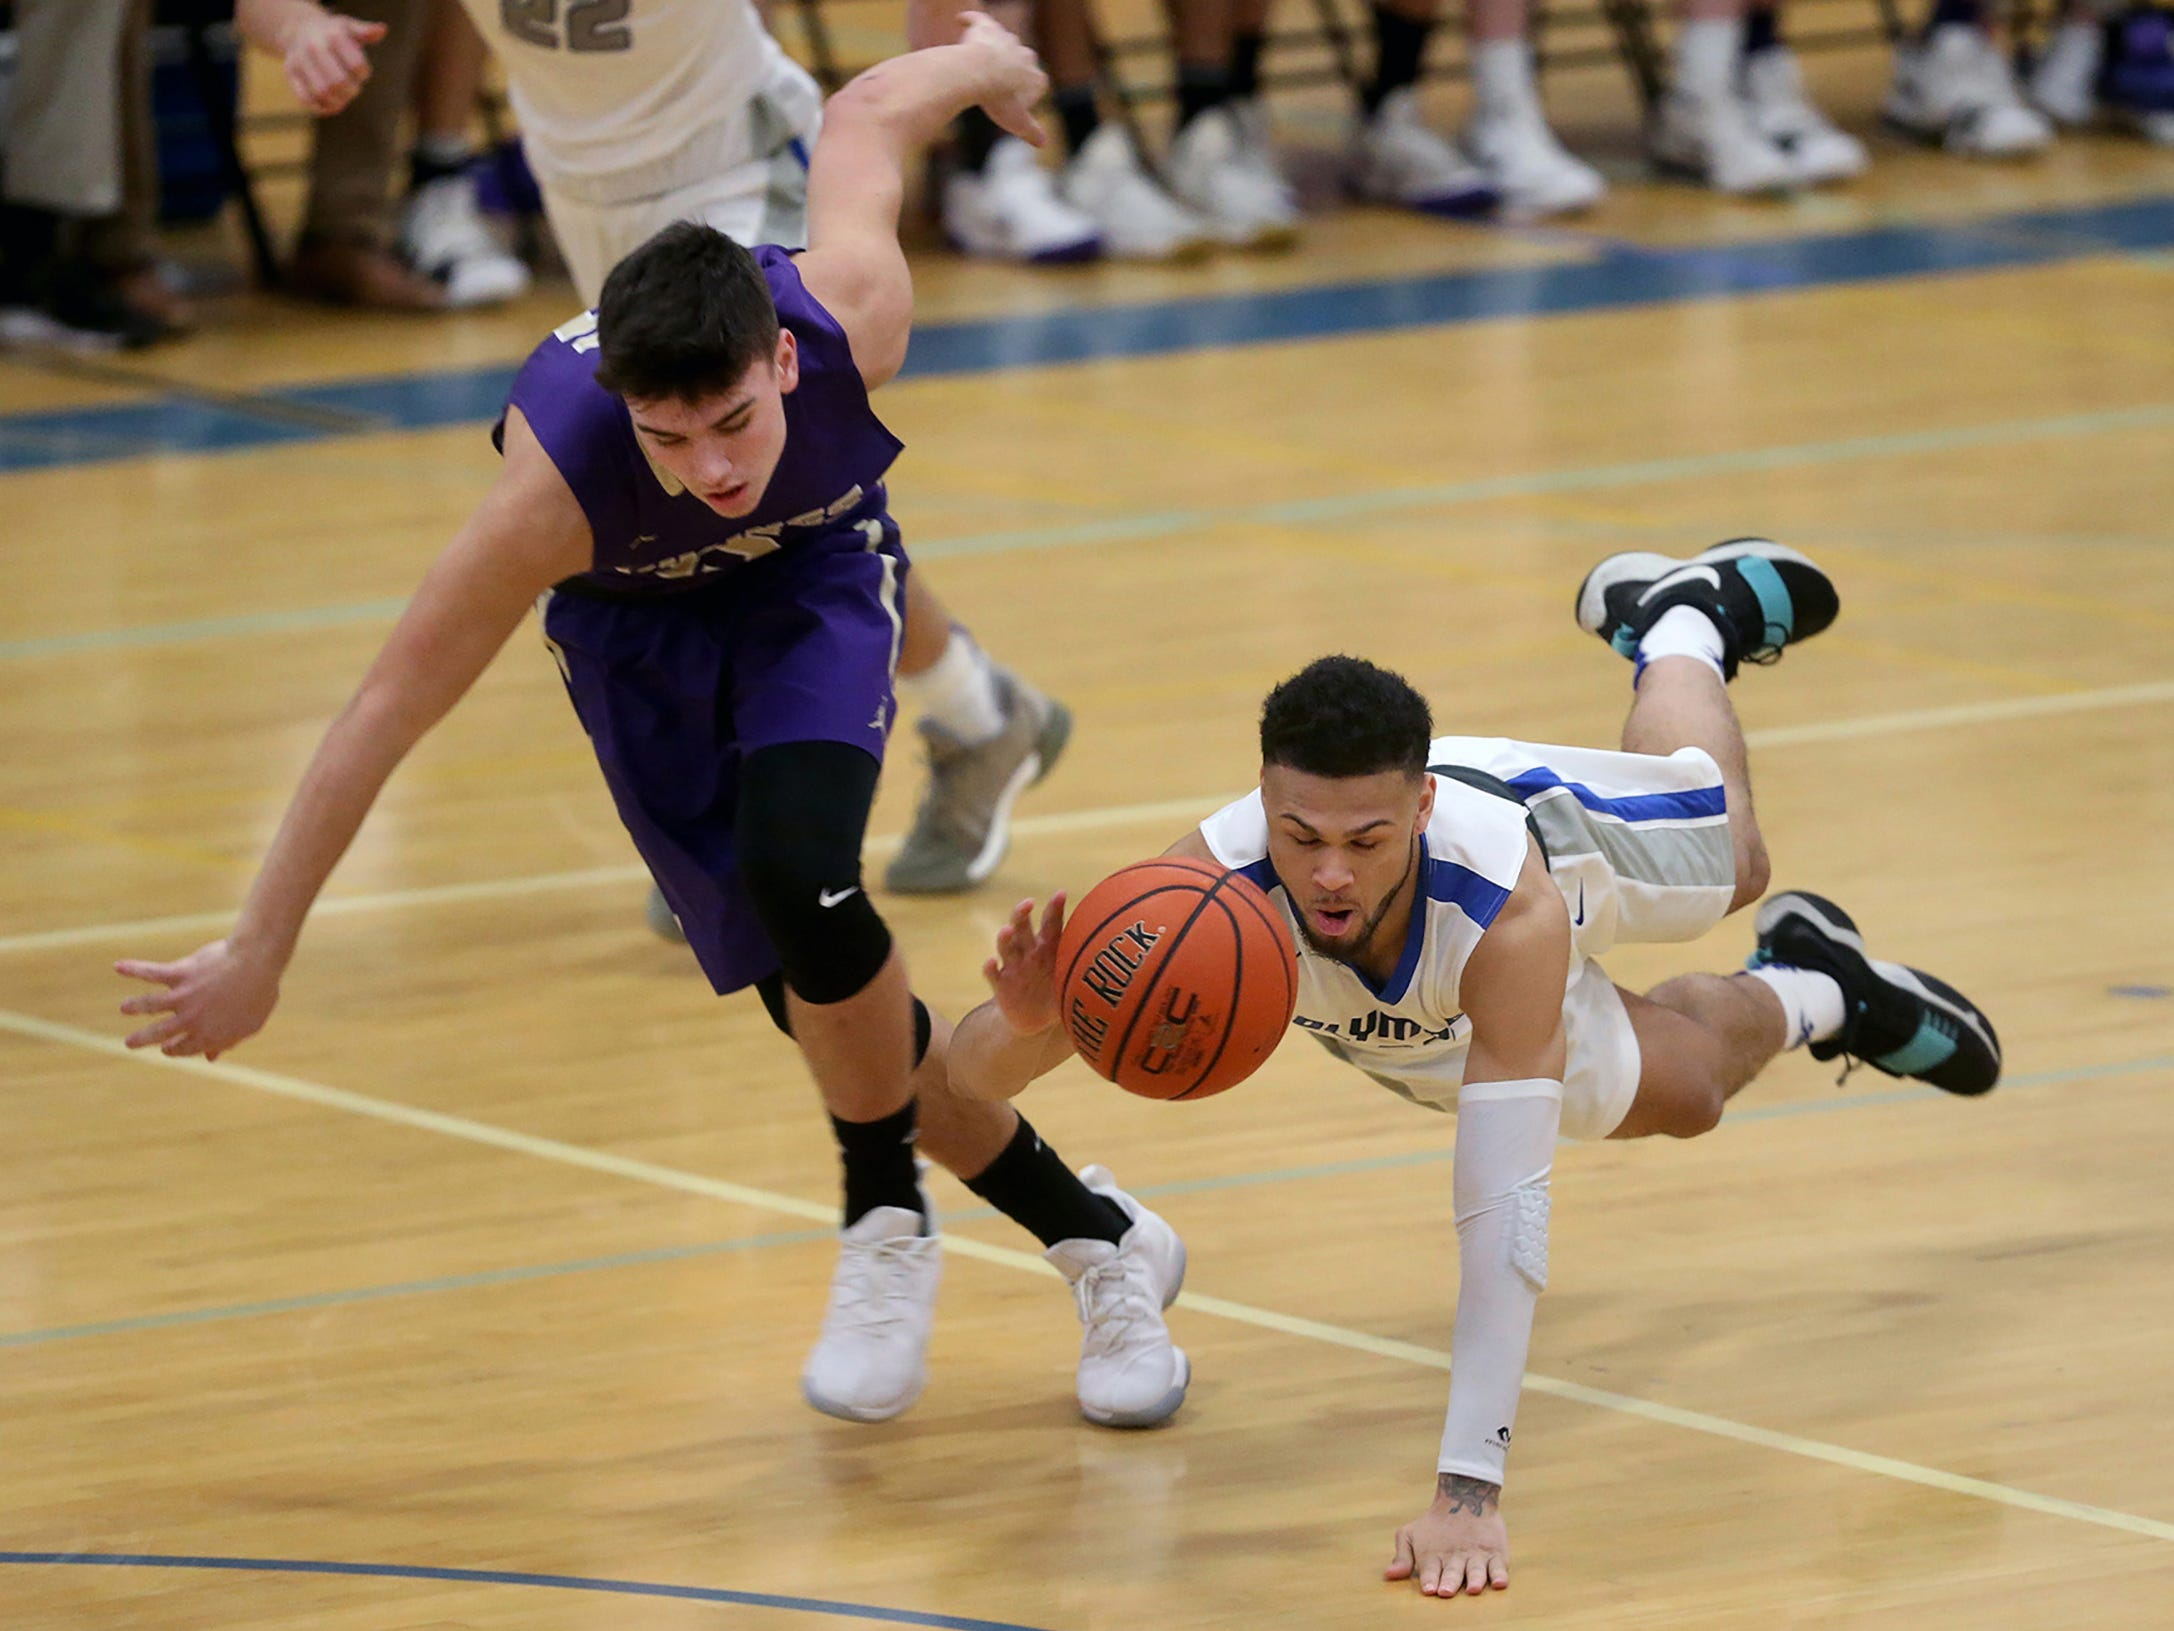 Olympic boys basketball player Jaiden Mosley dives for a loose ball as North Kitsap player Ryan Hecker goes for it Friday Jan, 12, 2017 at Olympic.